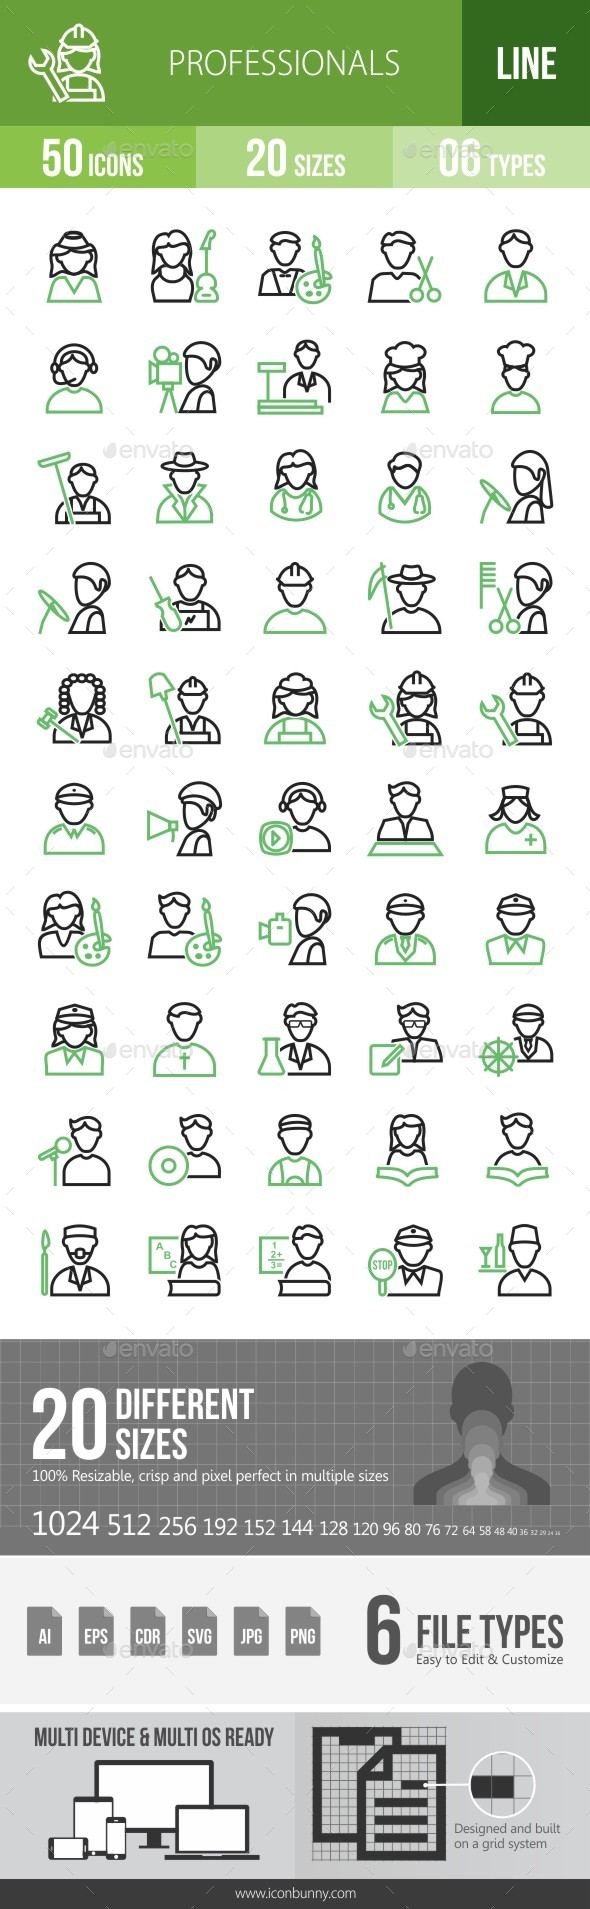 50 Professionals Green & Black Line Icons - Icons